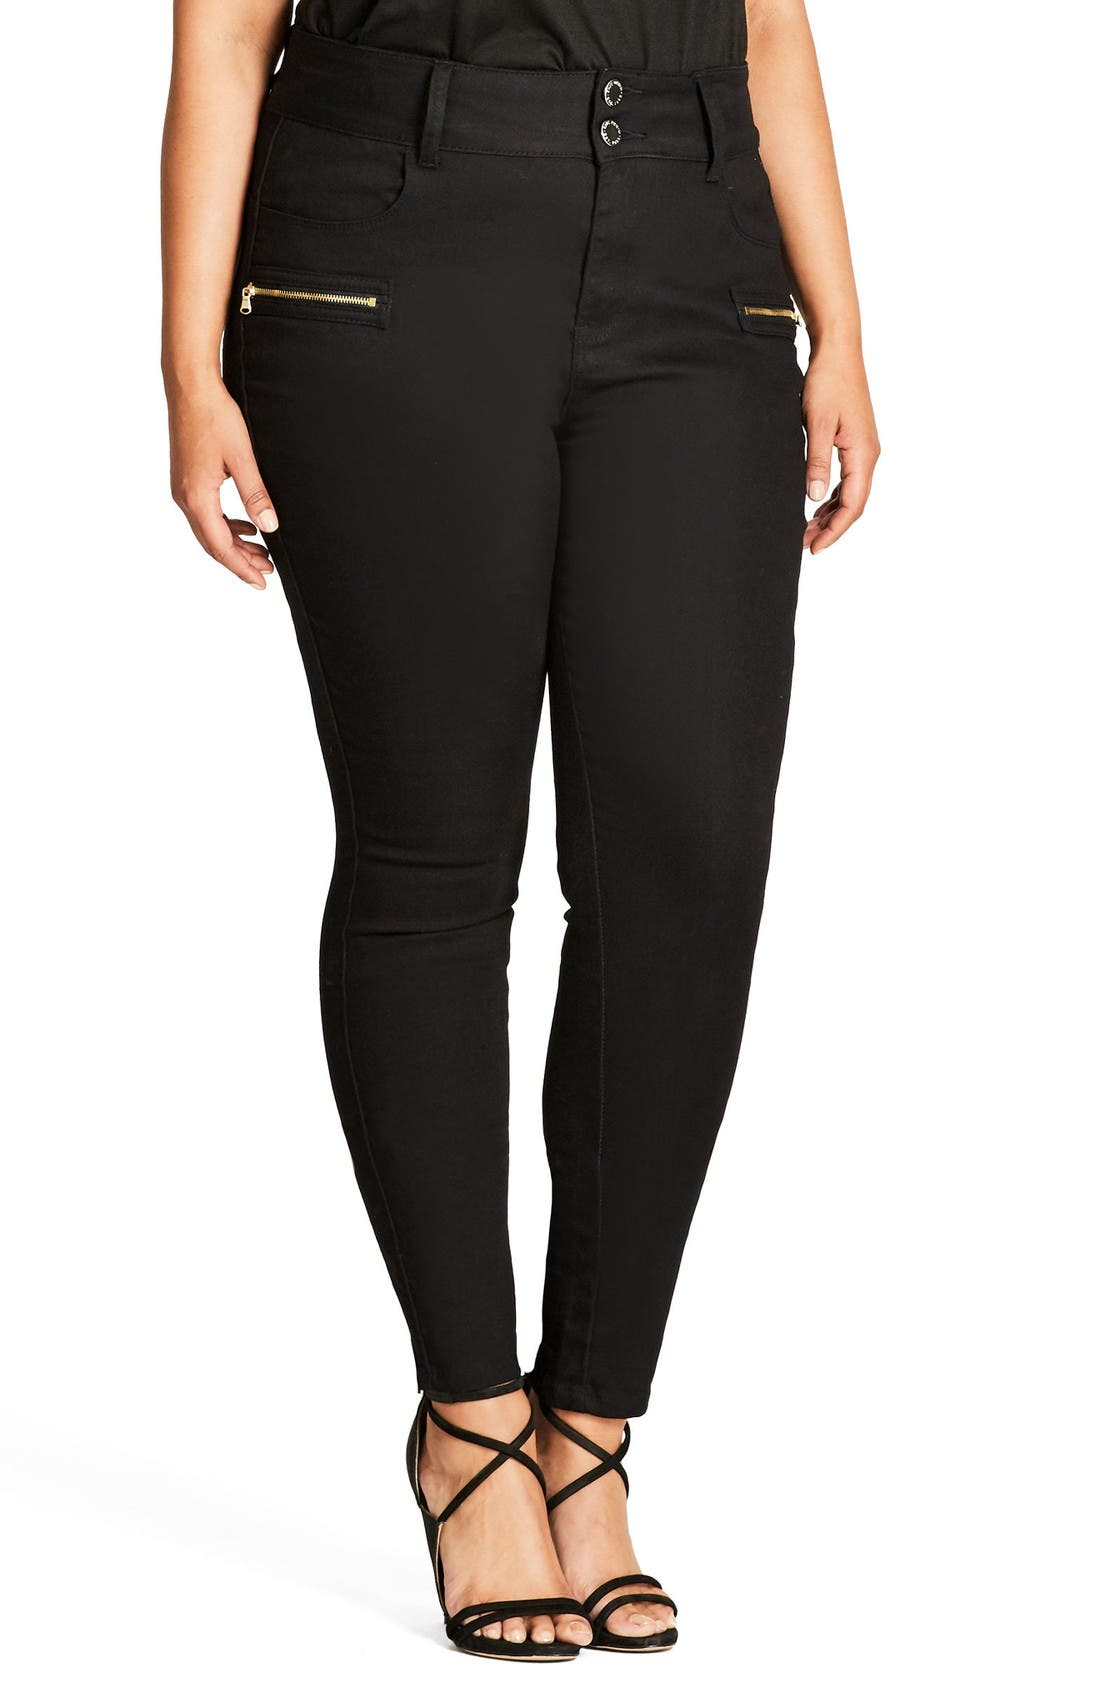 Alternate Image 1 Selected - City Chic Jet Apple Stretch Skinny Jeans (Plus Size)